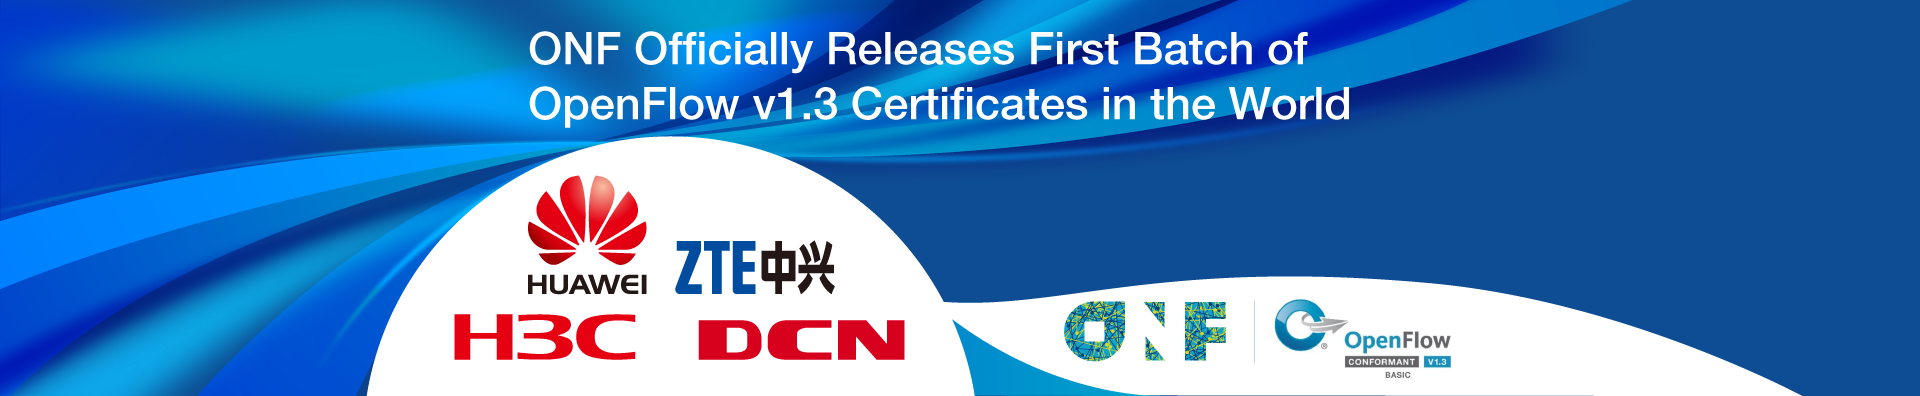 Global Sdn Certified Testing Center